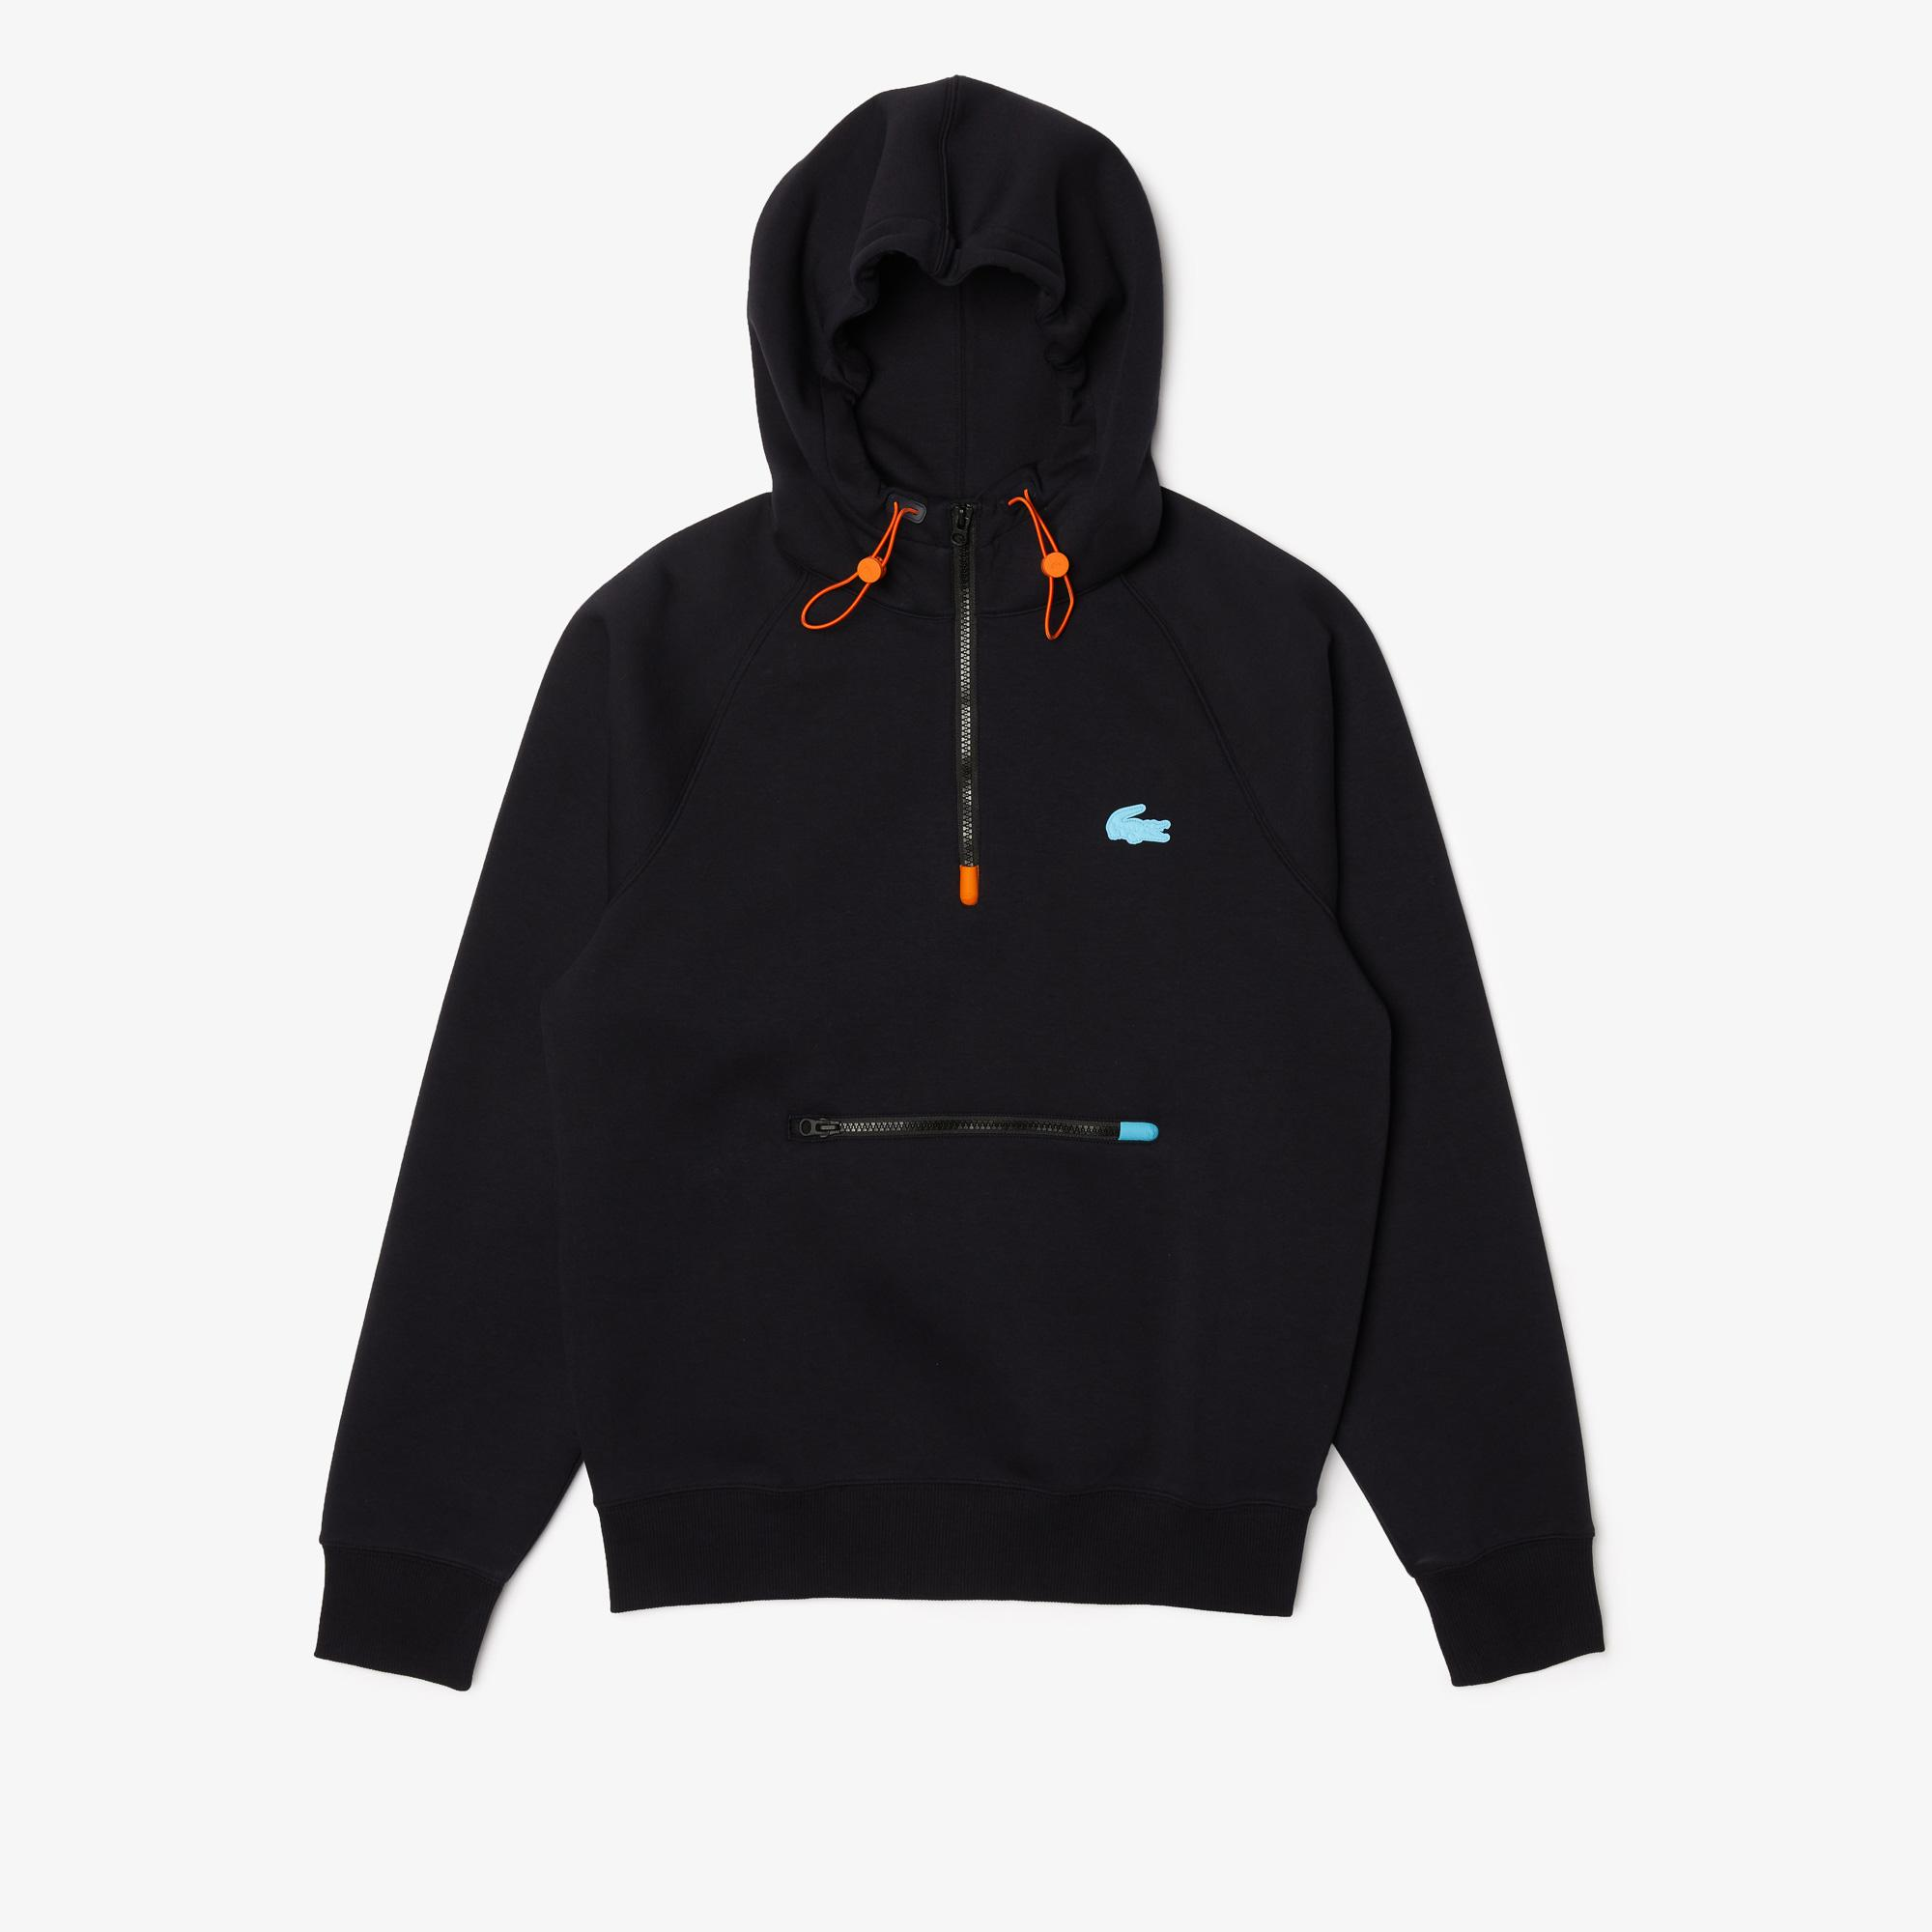 Lacoste Men's Colored Details Hooded Pullover Sweatshirt